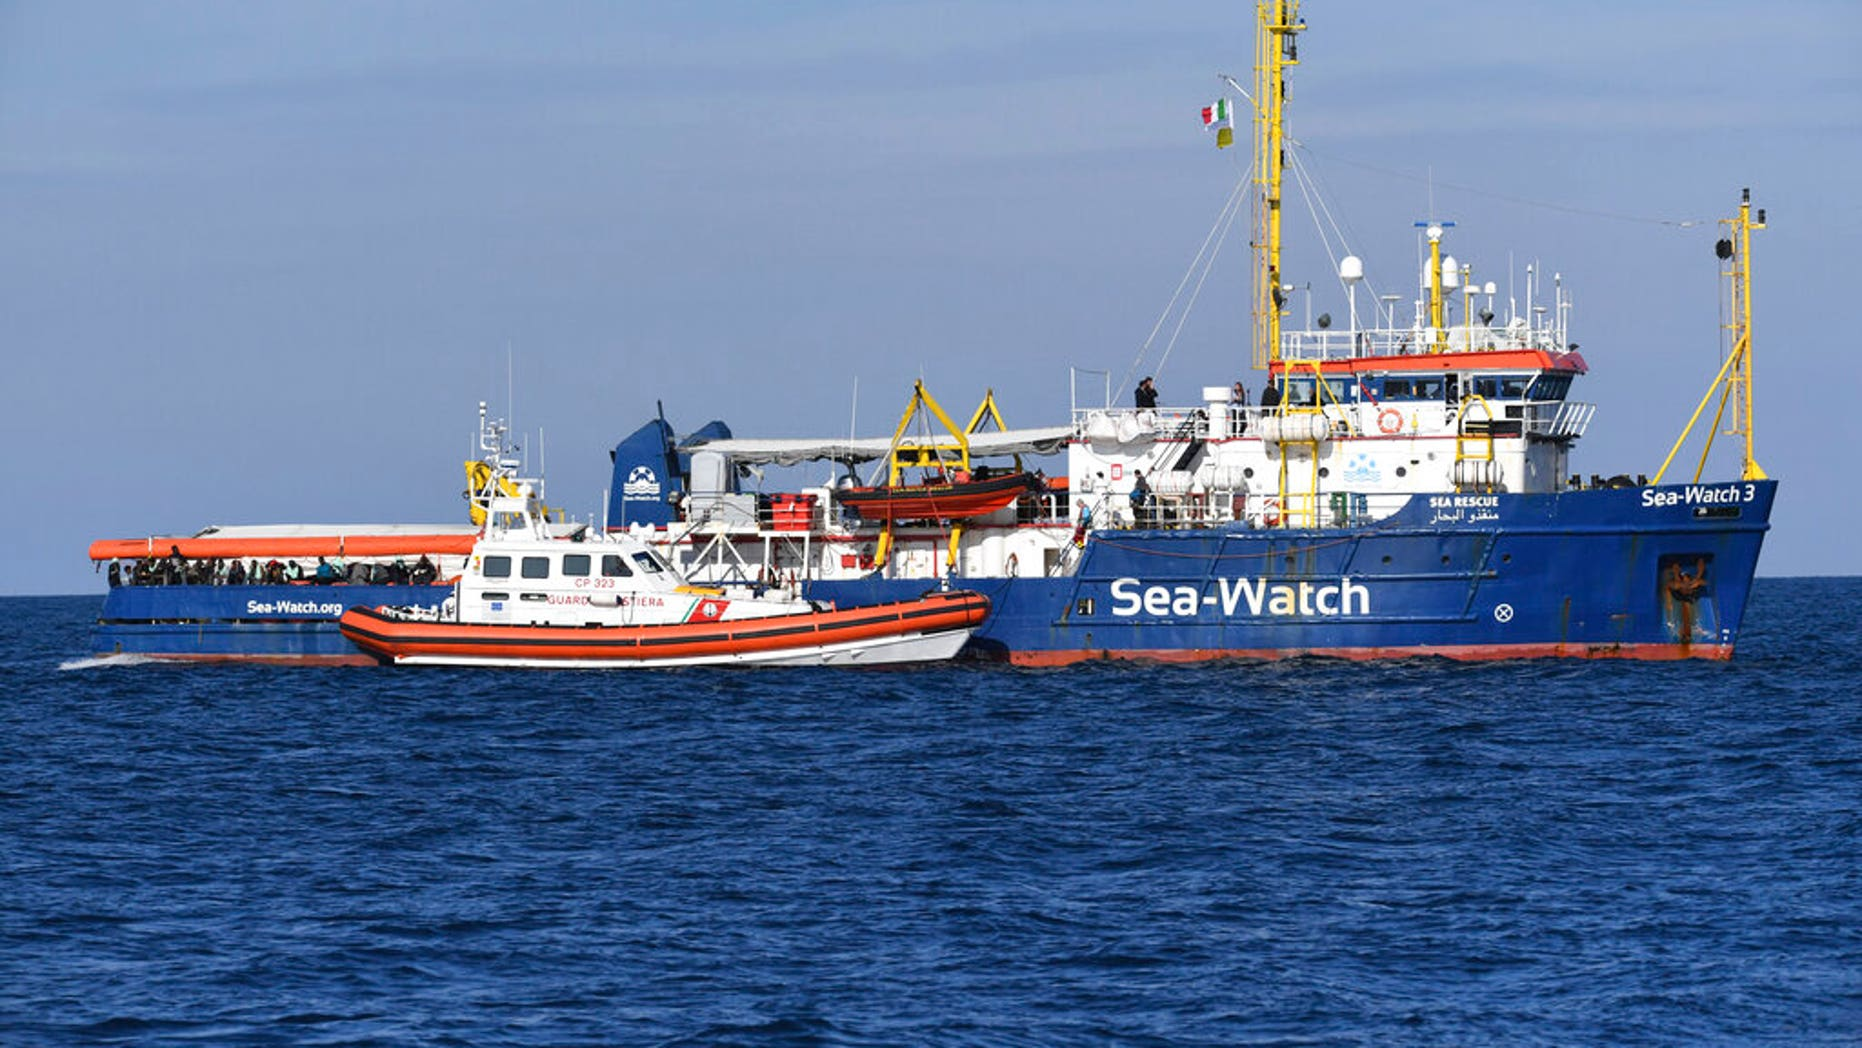 A Coast Guard boat approaches a German humanitarian group's rescue boat Sea Watch 3, to deliver food and blankets for the cold, off the coast of Syracuse, Italy, Sunday, Jan. 27, 2019. (AP Photo/Salvatore Cavalli)